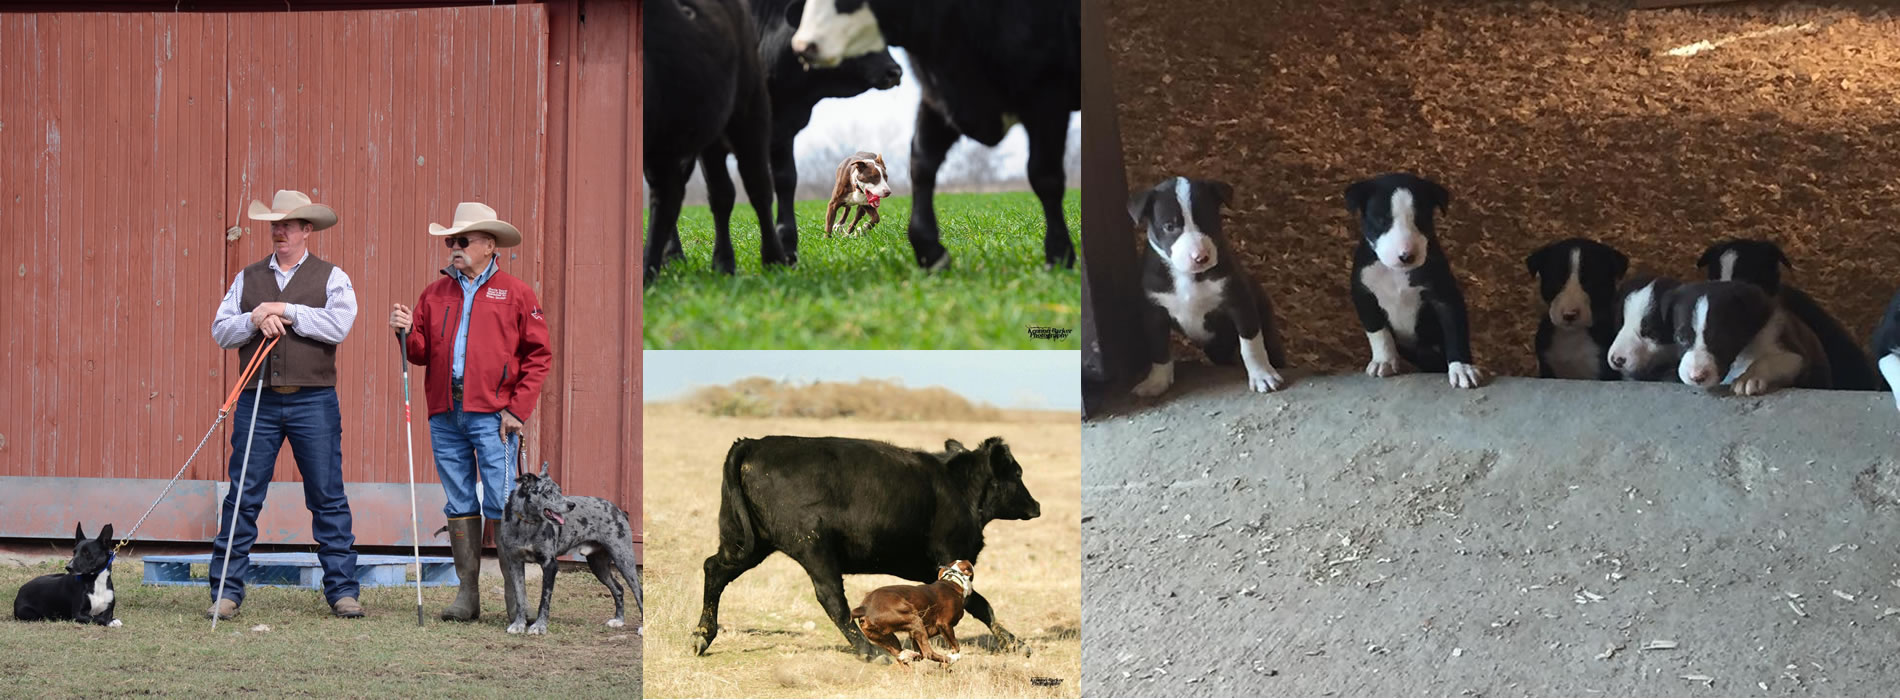 diamond j stockdogs - texas cowdogs training and sales